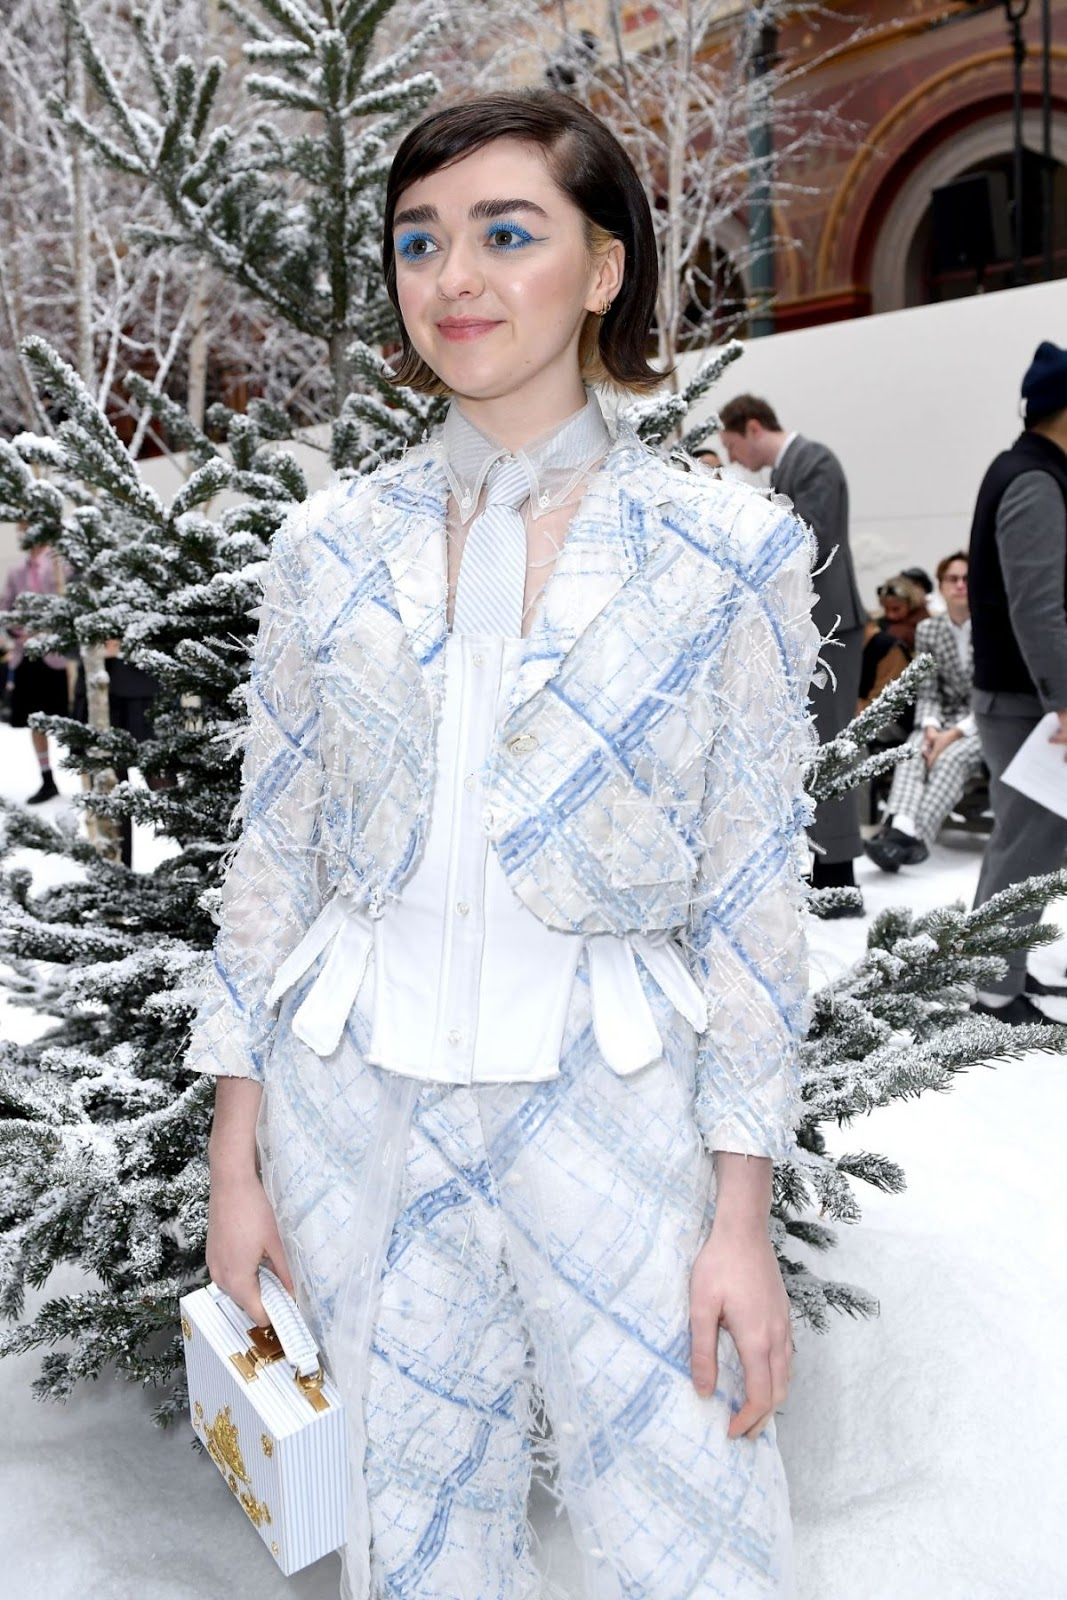 MAISIE WILLIAMS at Thom Browne Show at Paris Fashion Week